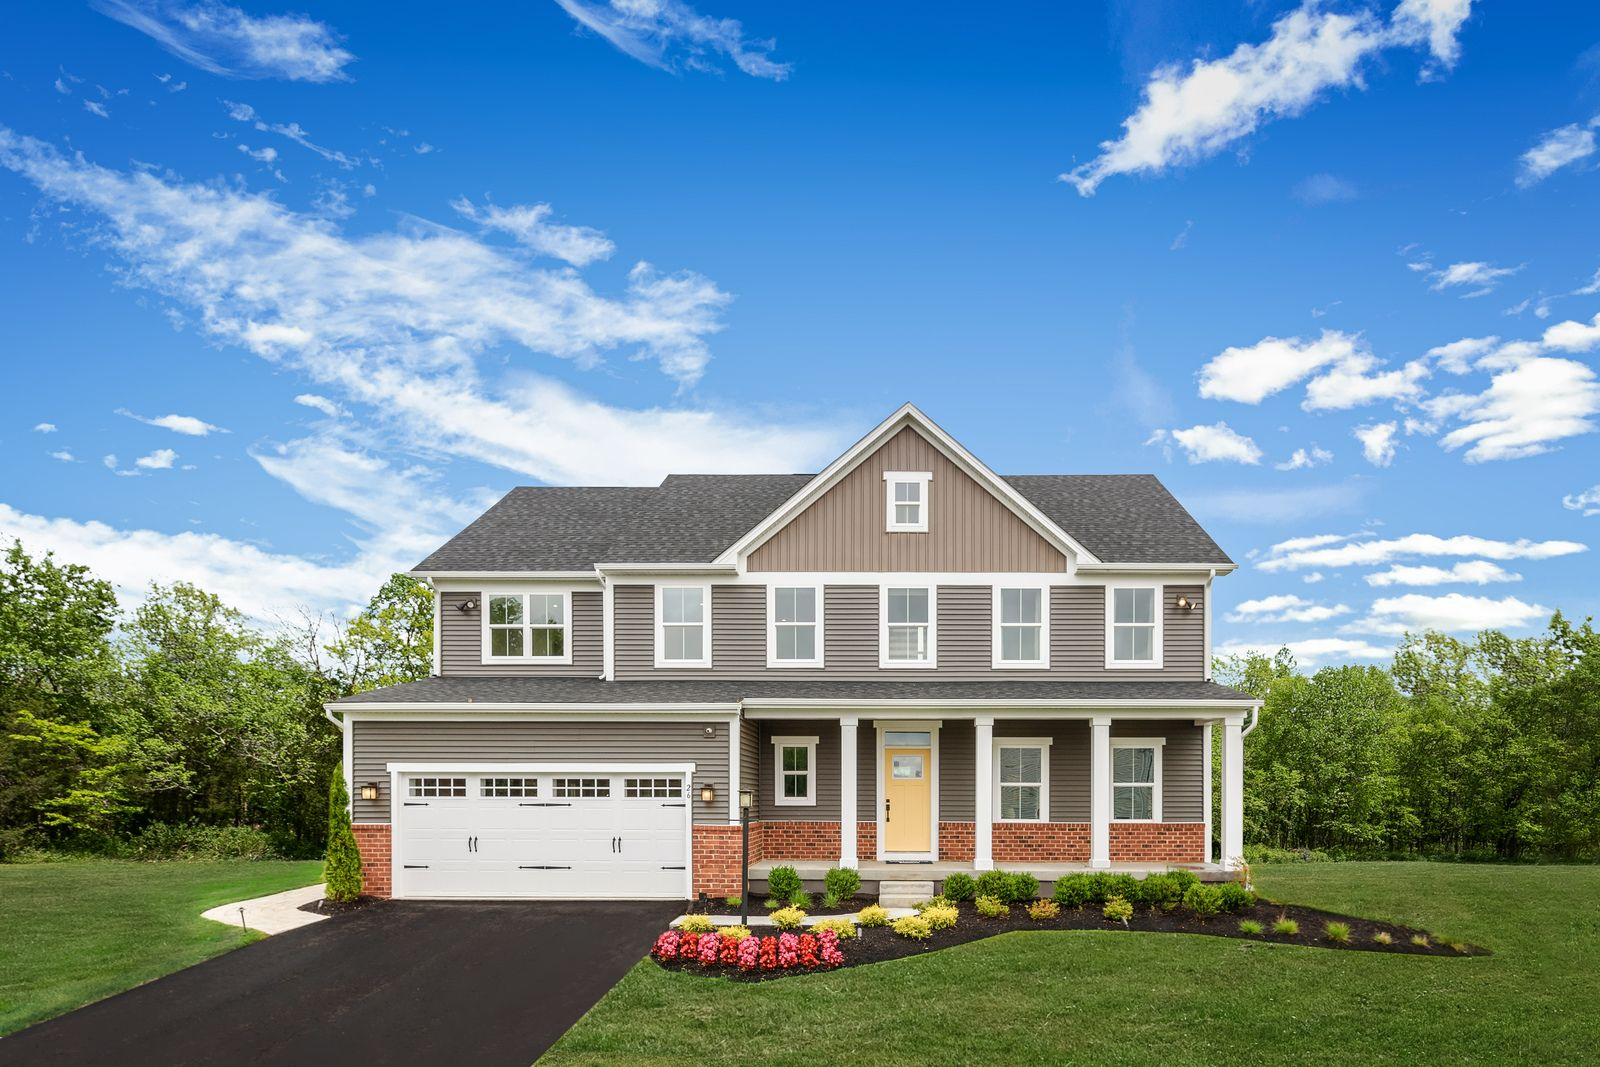 Welcome Home to Foxwood Trail:Jackson Township's only new homes surrounded by mature trees w/ up to 5 bedrooms in Seneca Valley Schools just 10 minutes from Cranberry, from upper $300s.Click here to join the VIP List.